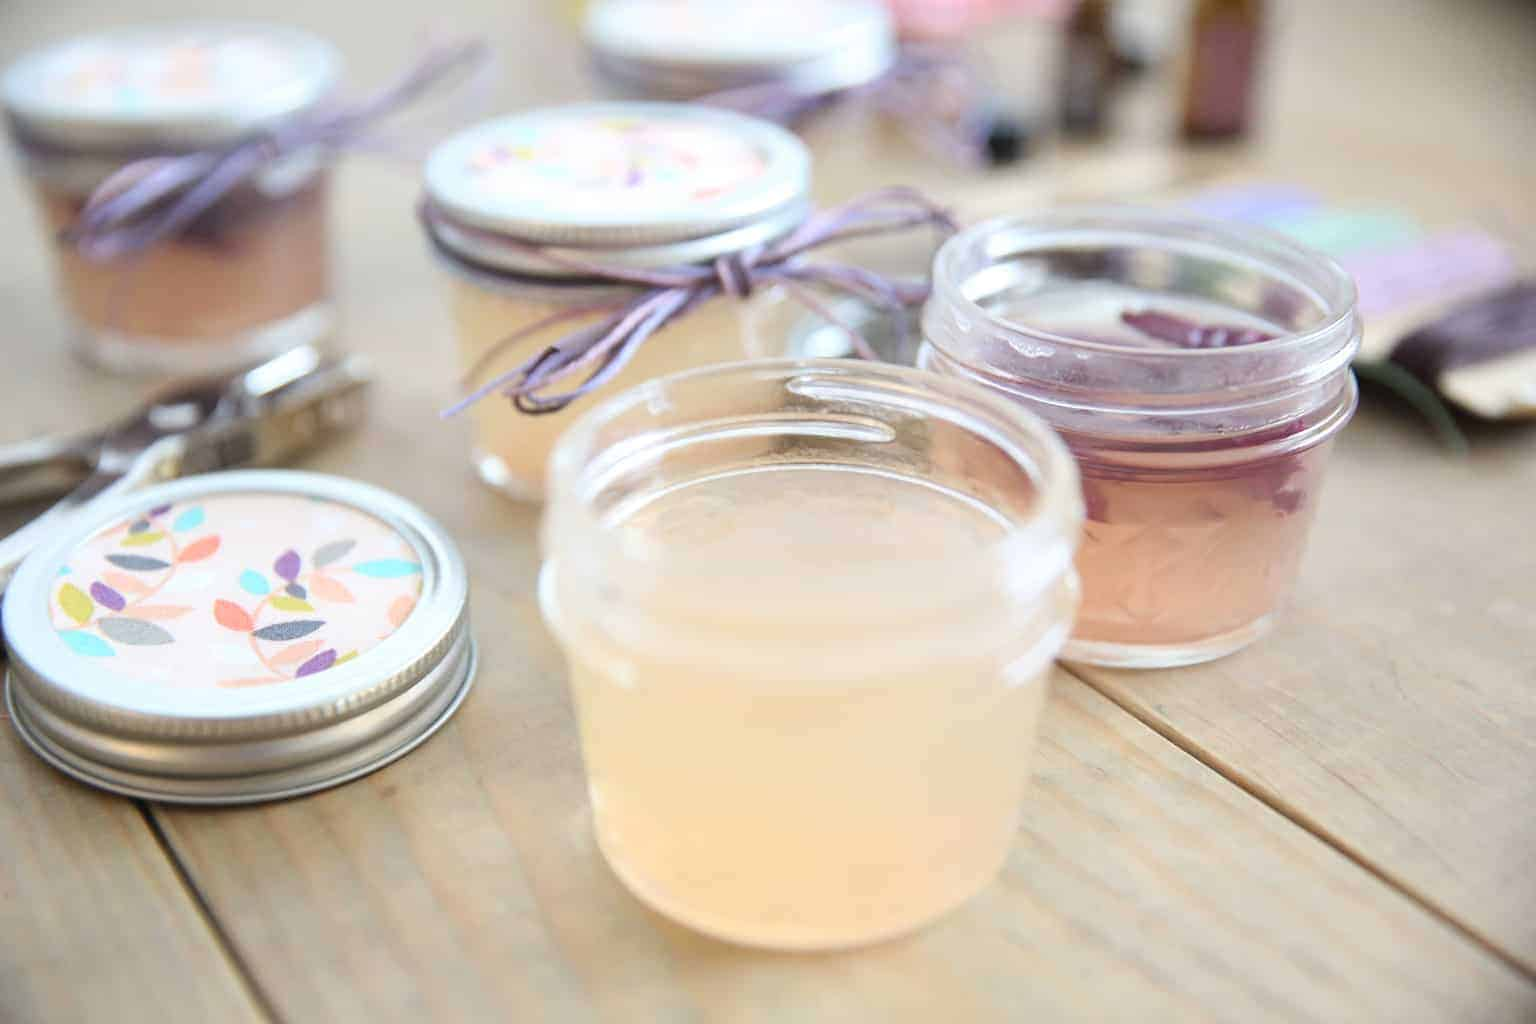 Homemade Gel Air Freshener toxic free home homemade christmas gift diy gift ideas handmade crafts essential oils healthy lifestyle